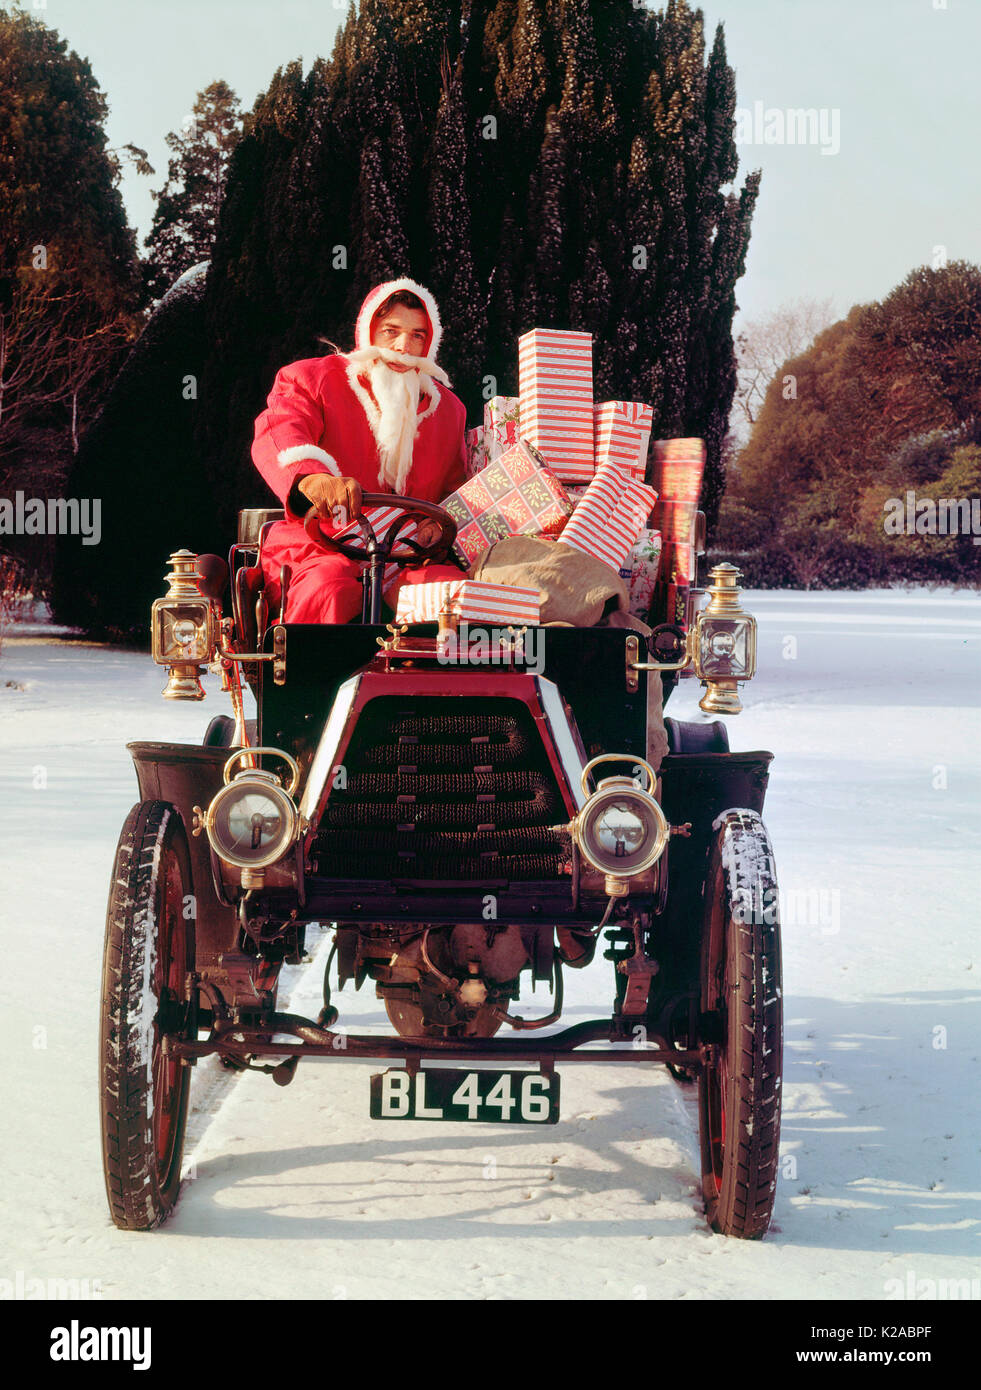 Christmas Gifts Car Stock Photos & Christmas Gifts Car Stock Images ...